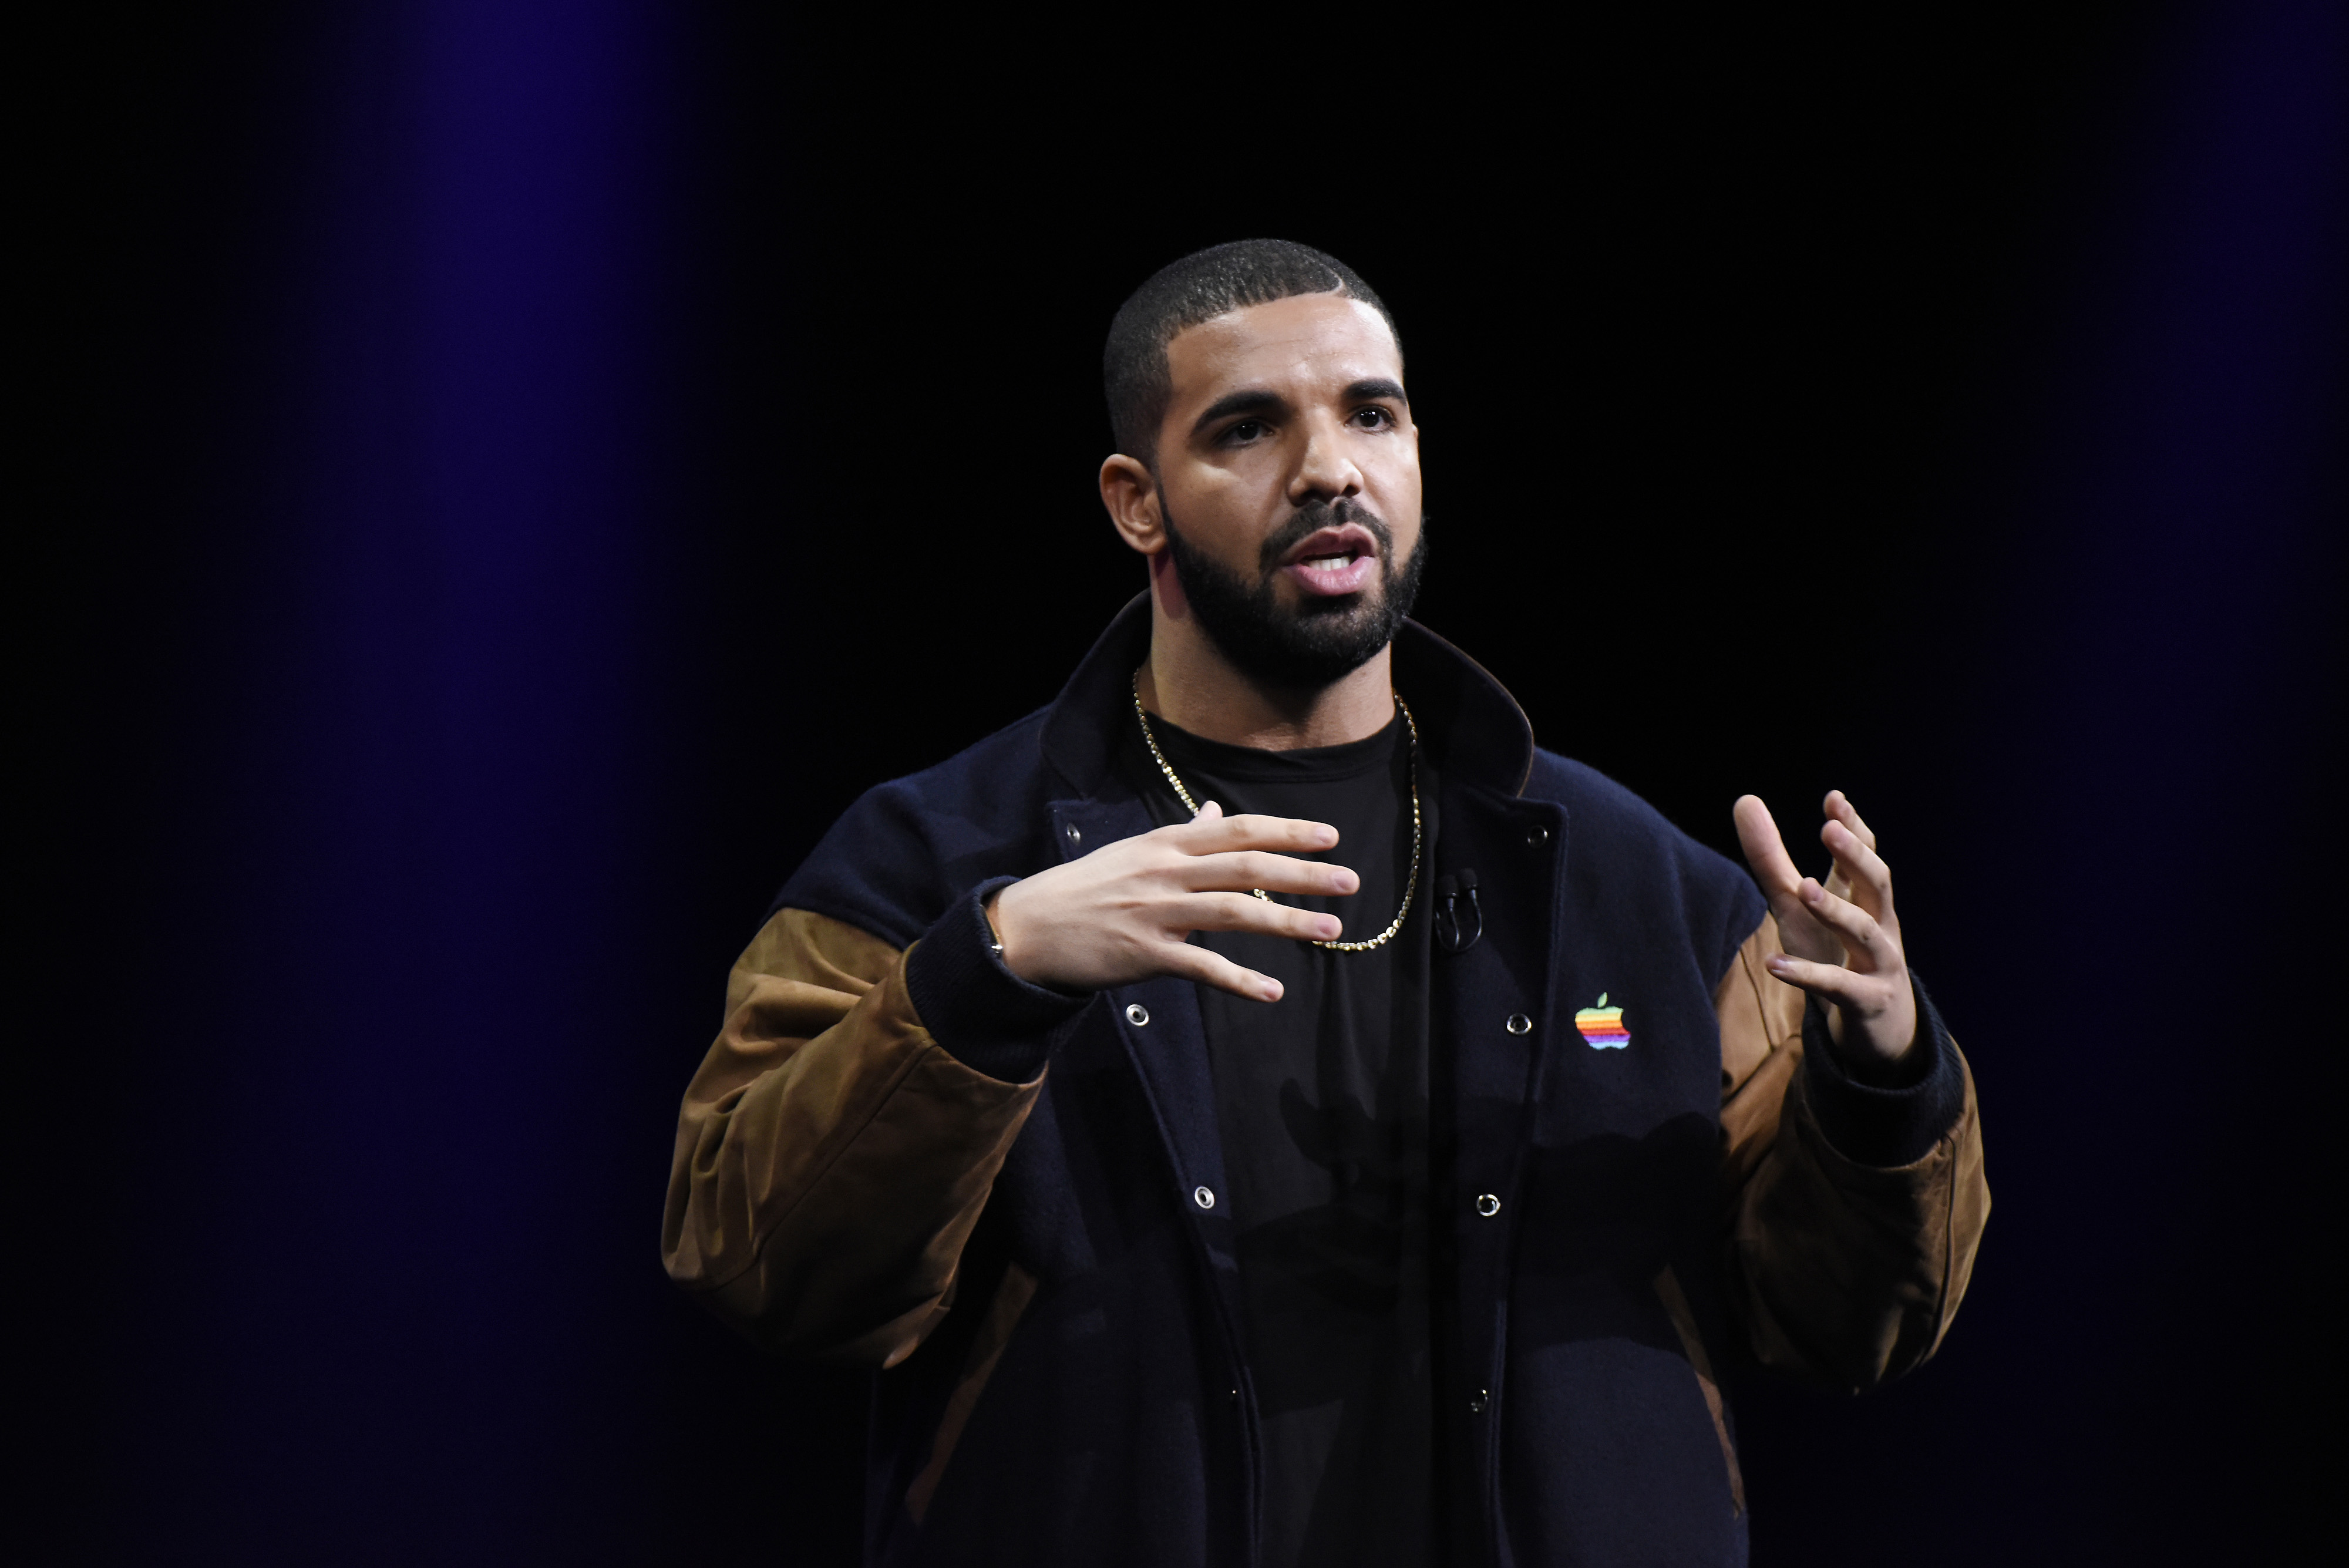 Entertainer Aubrey Drake Graham known as Drake speaks during the Apple World Wide Developers Conference (WWDC) in San Francisco, California, U.S., on Monday, June 8, 2015. Apple Inc., the maker of iPhones and iPads, will introduce software improvements for its computer and mobile devices as well as reveal new updates, including the introduction of a revamped streaming music service. Photographer: David Paul Morris/Bloomberg *** Local Caption *** Drake